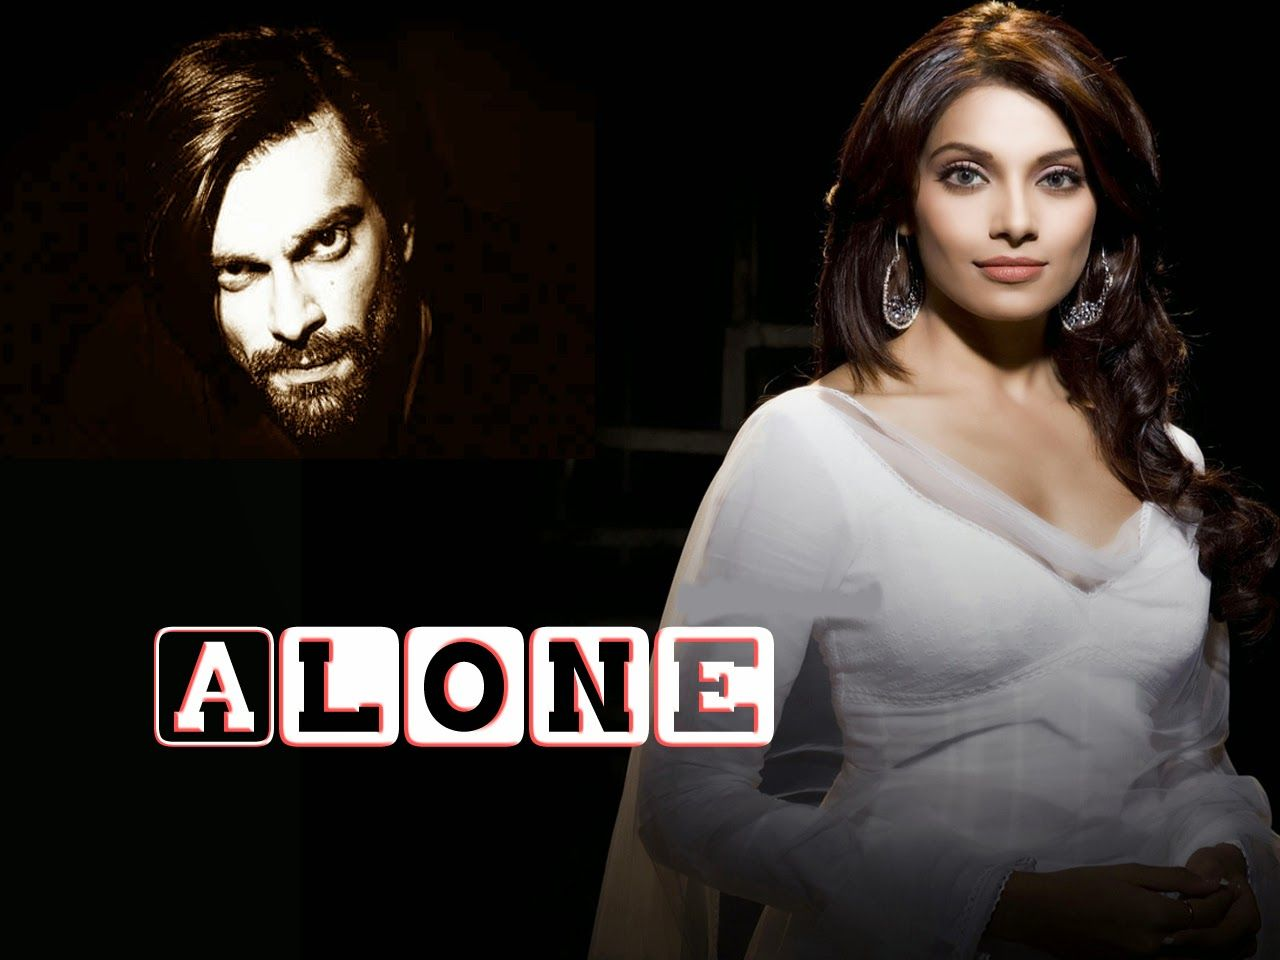 alone, alone mp3 songs, alone movie songs download, download alone